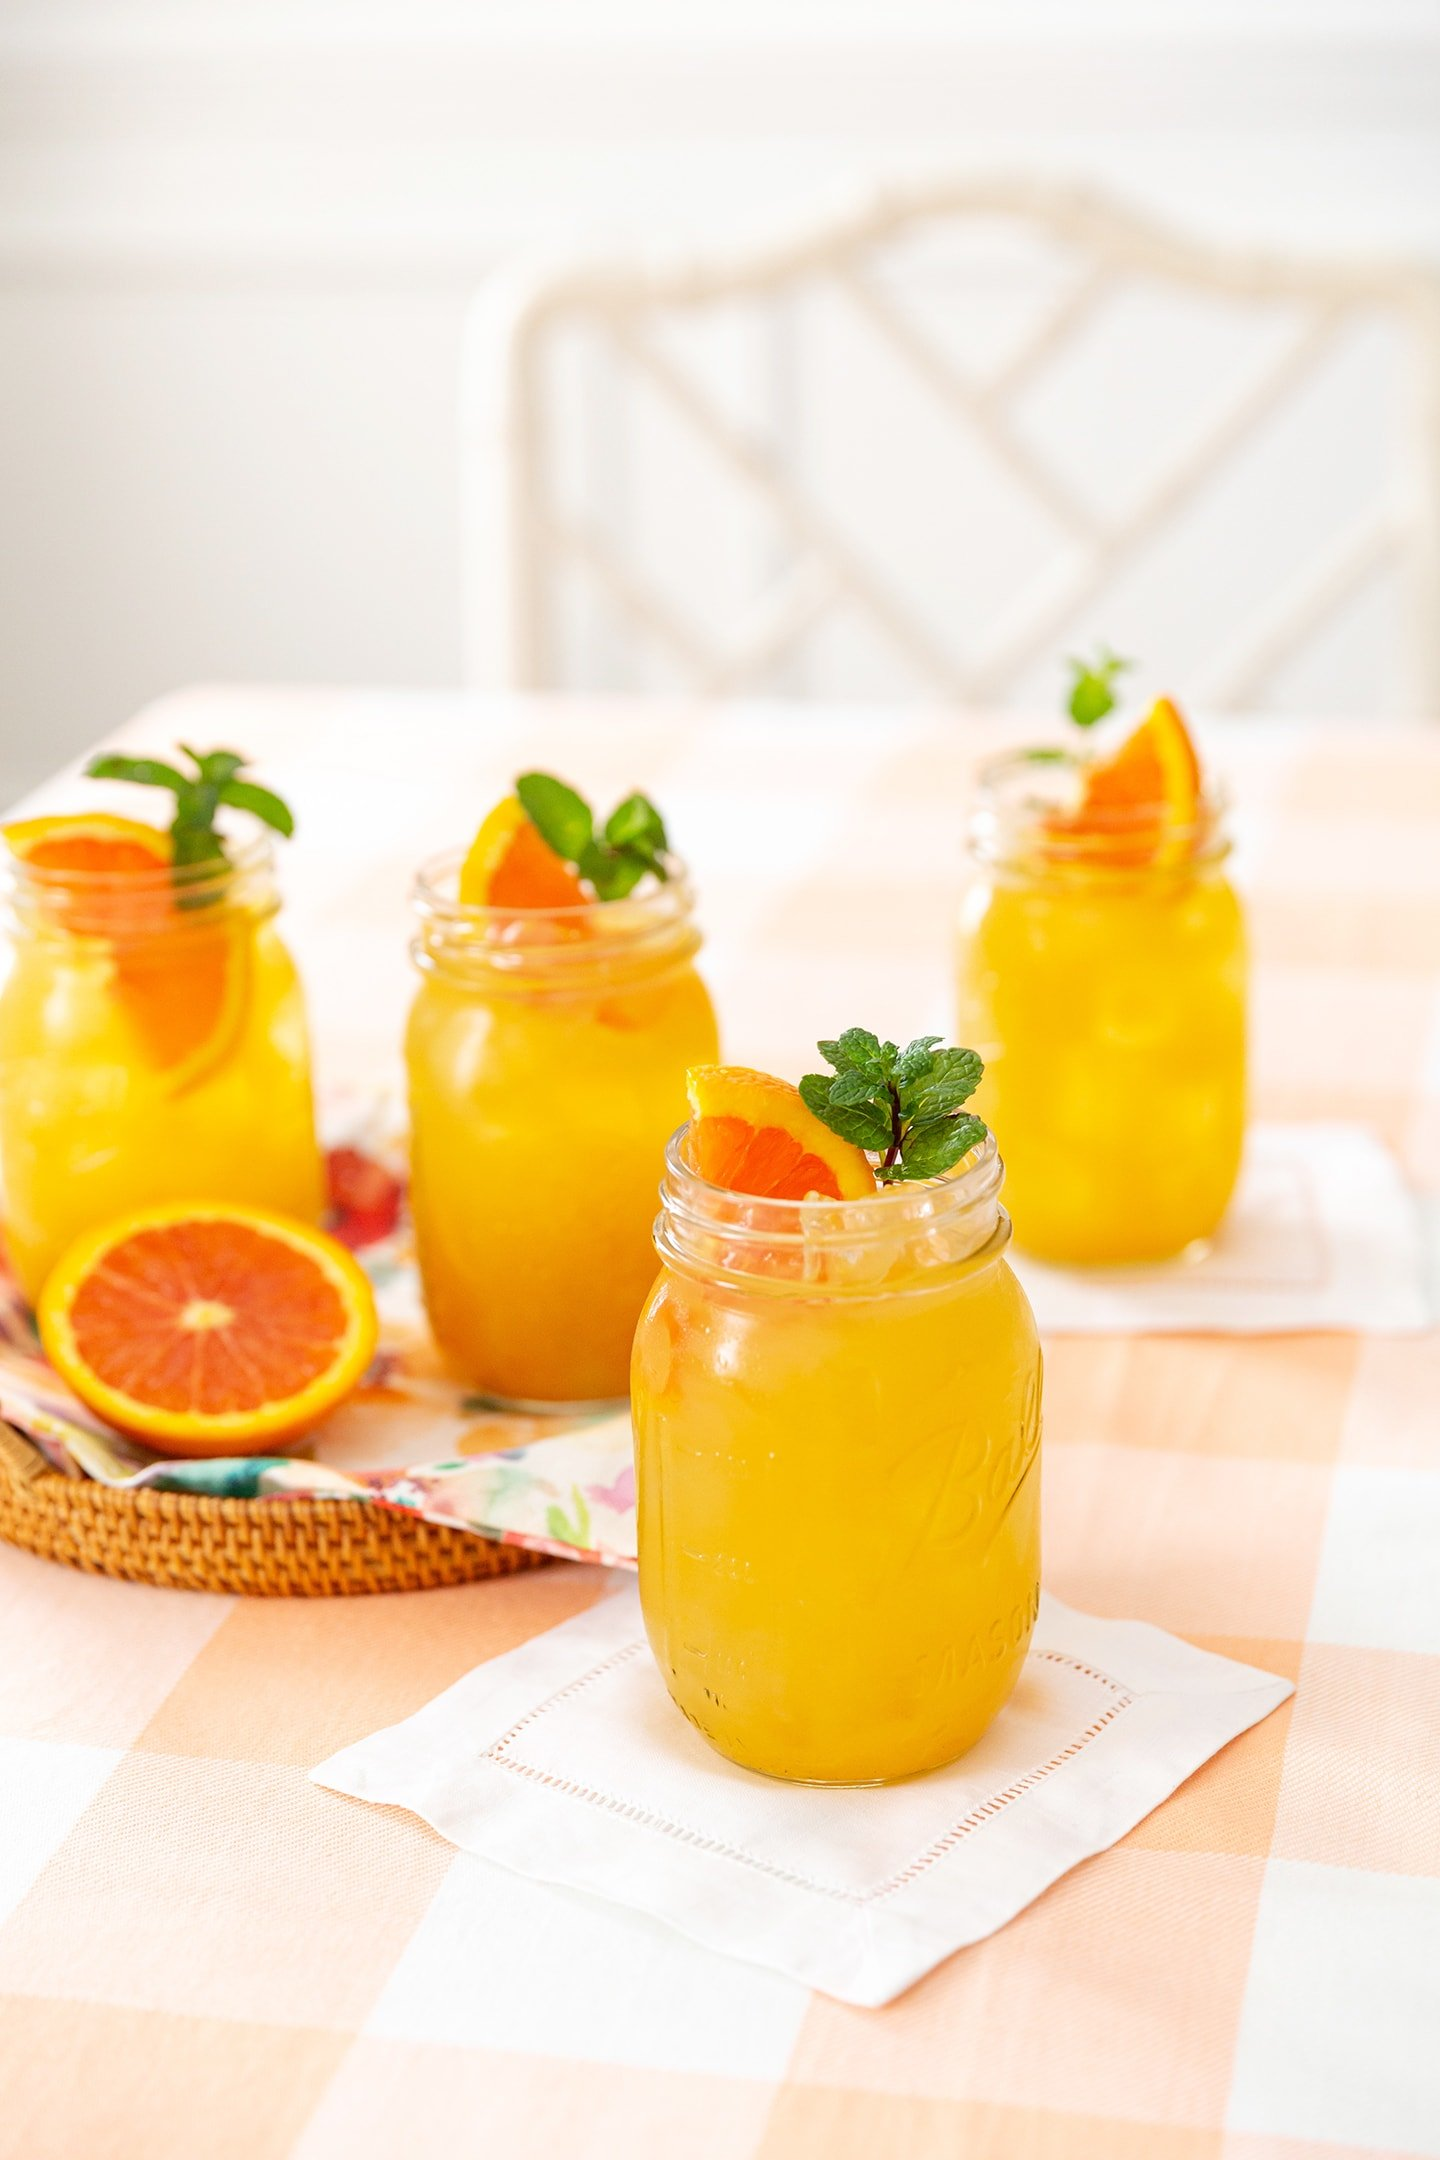 Fruit Tea garnished with orange slices and fresh mint sprigs